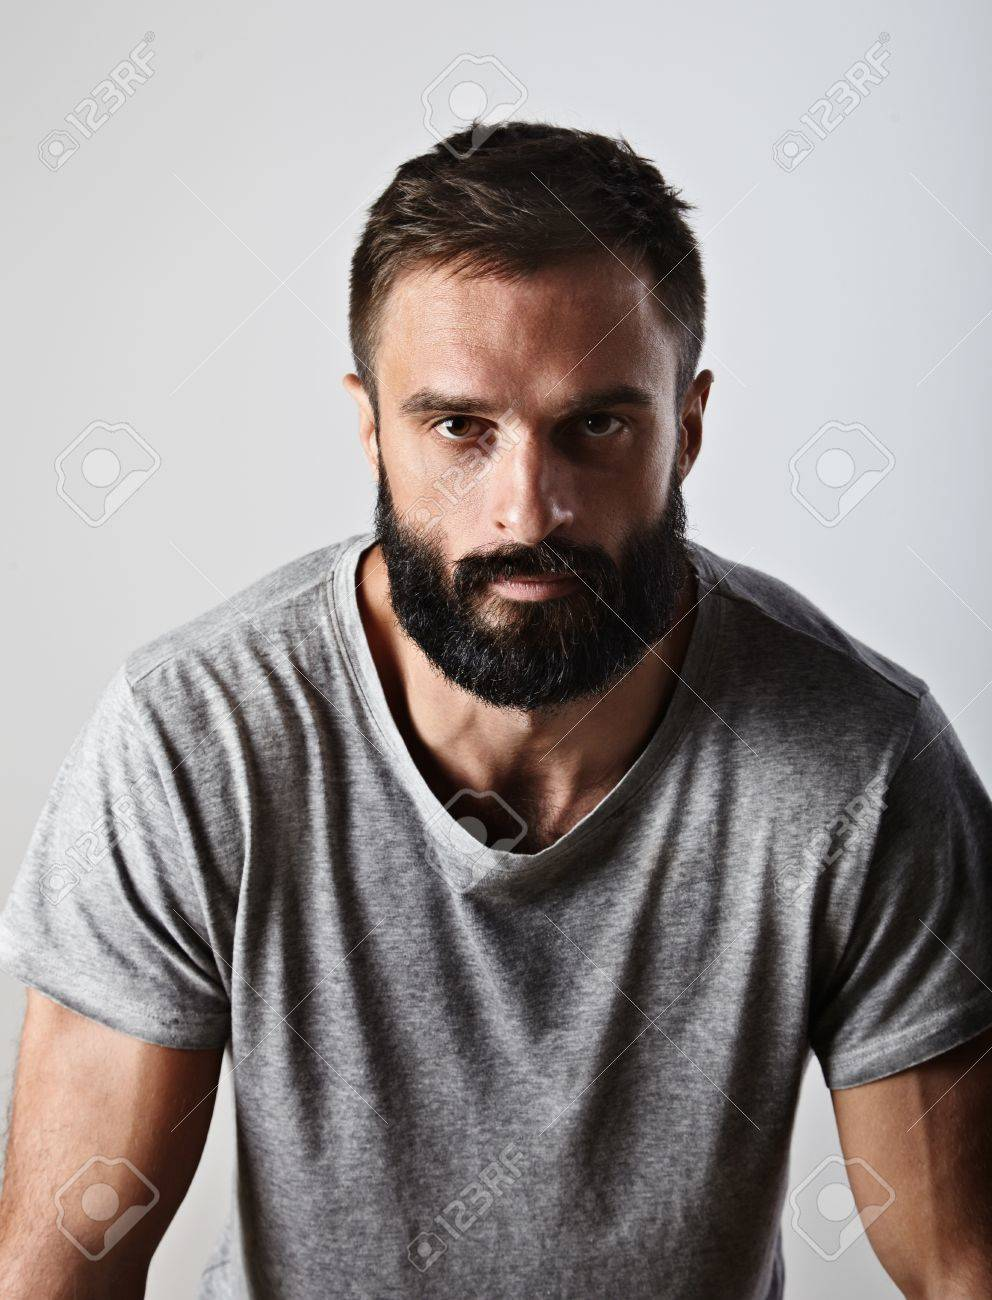 Handsome bearded man